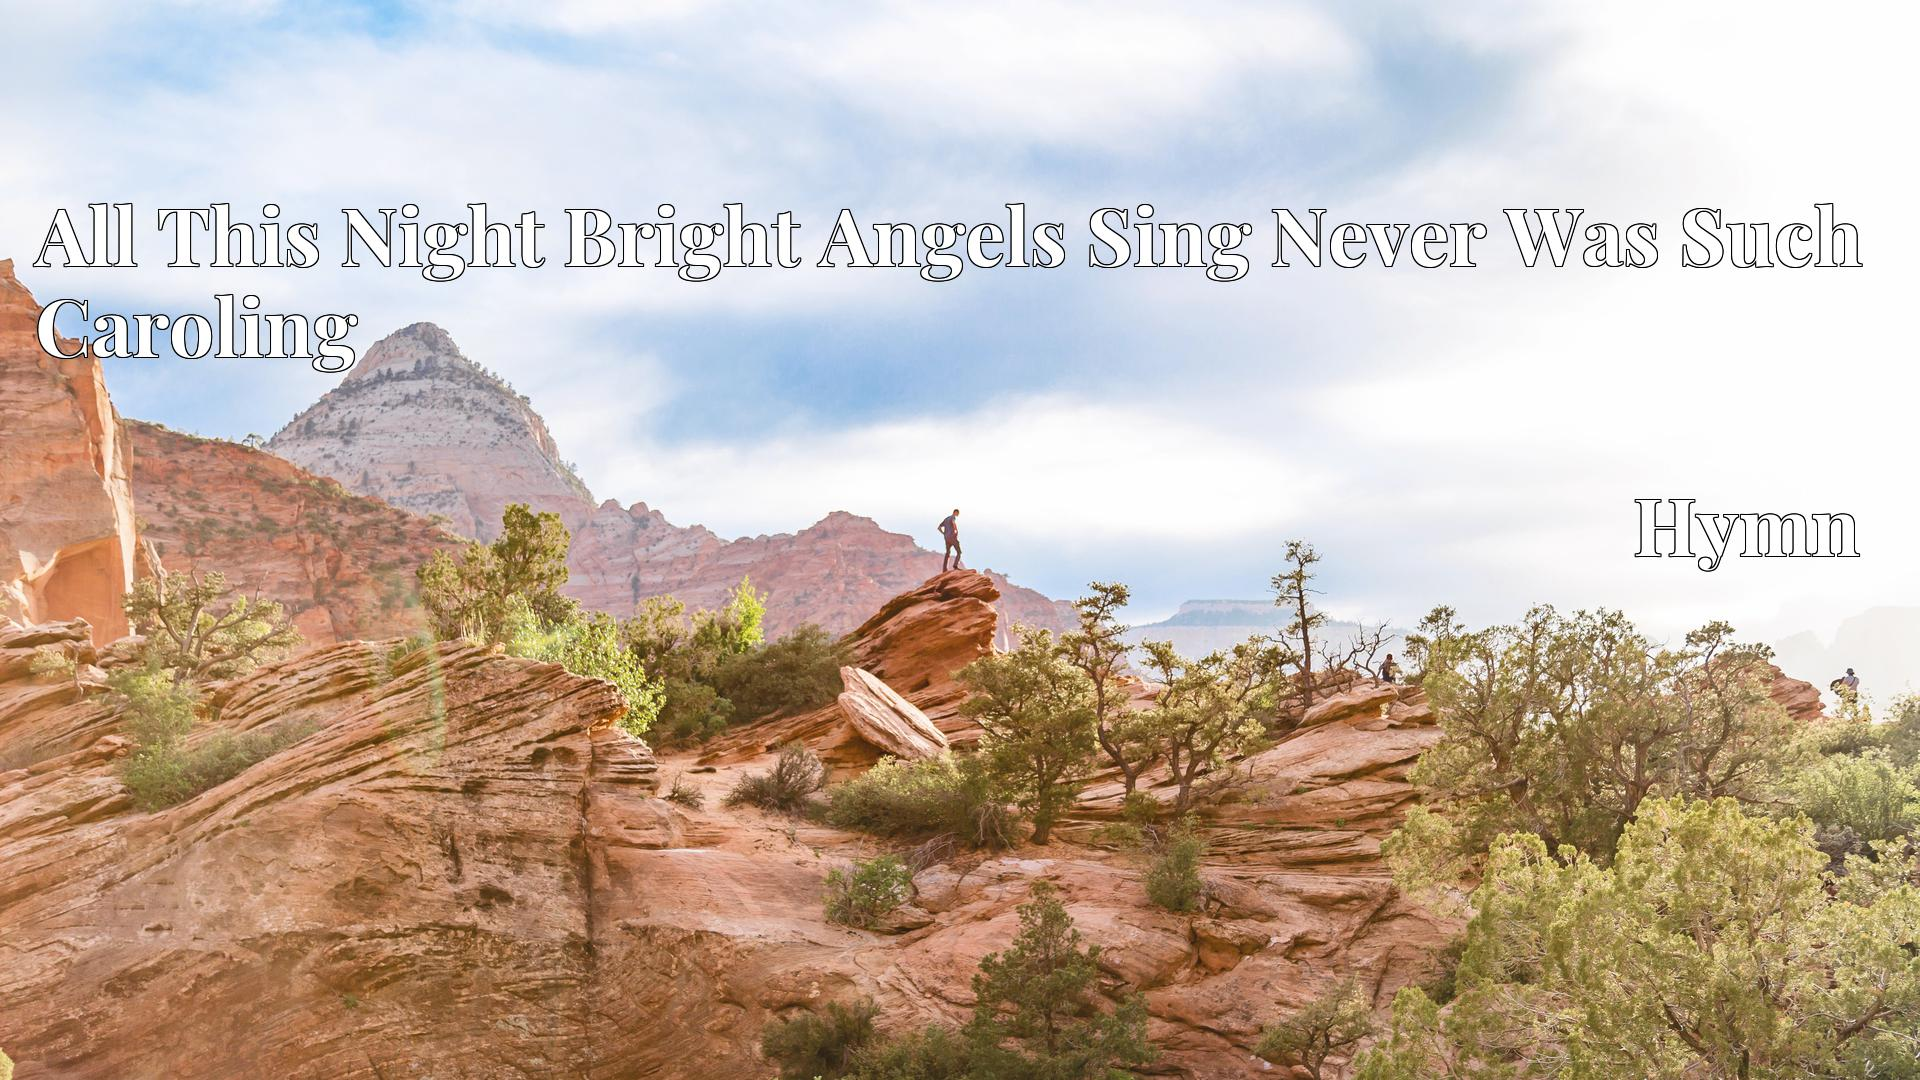 All This Night Bright Angels Sing Never Was Such Caroling - Hymn